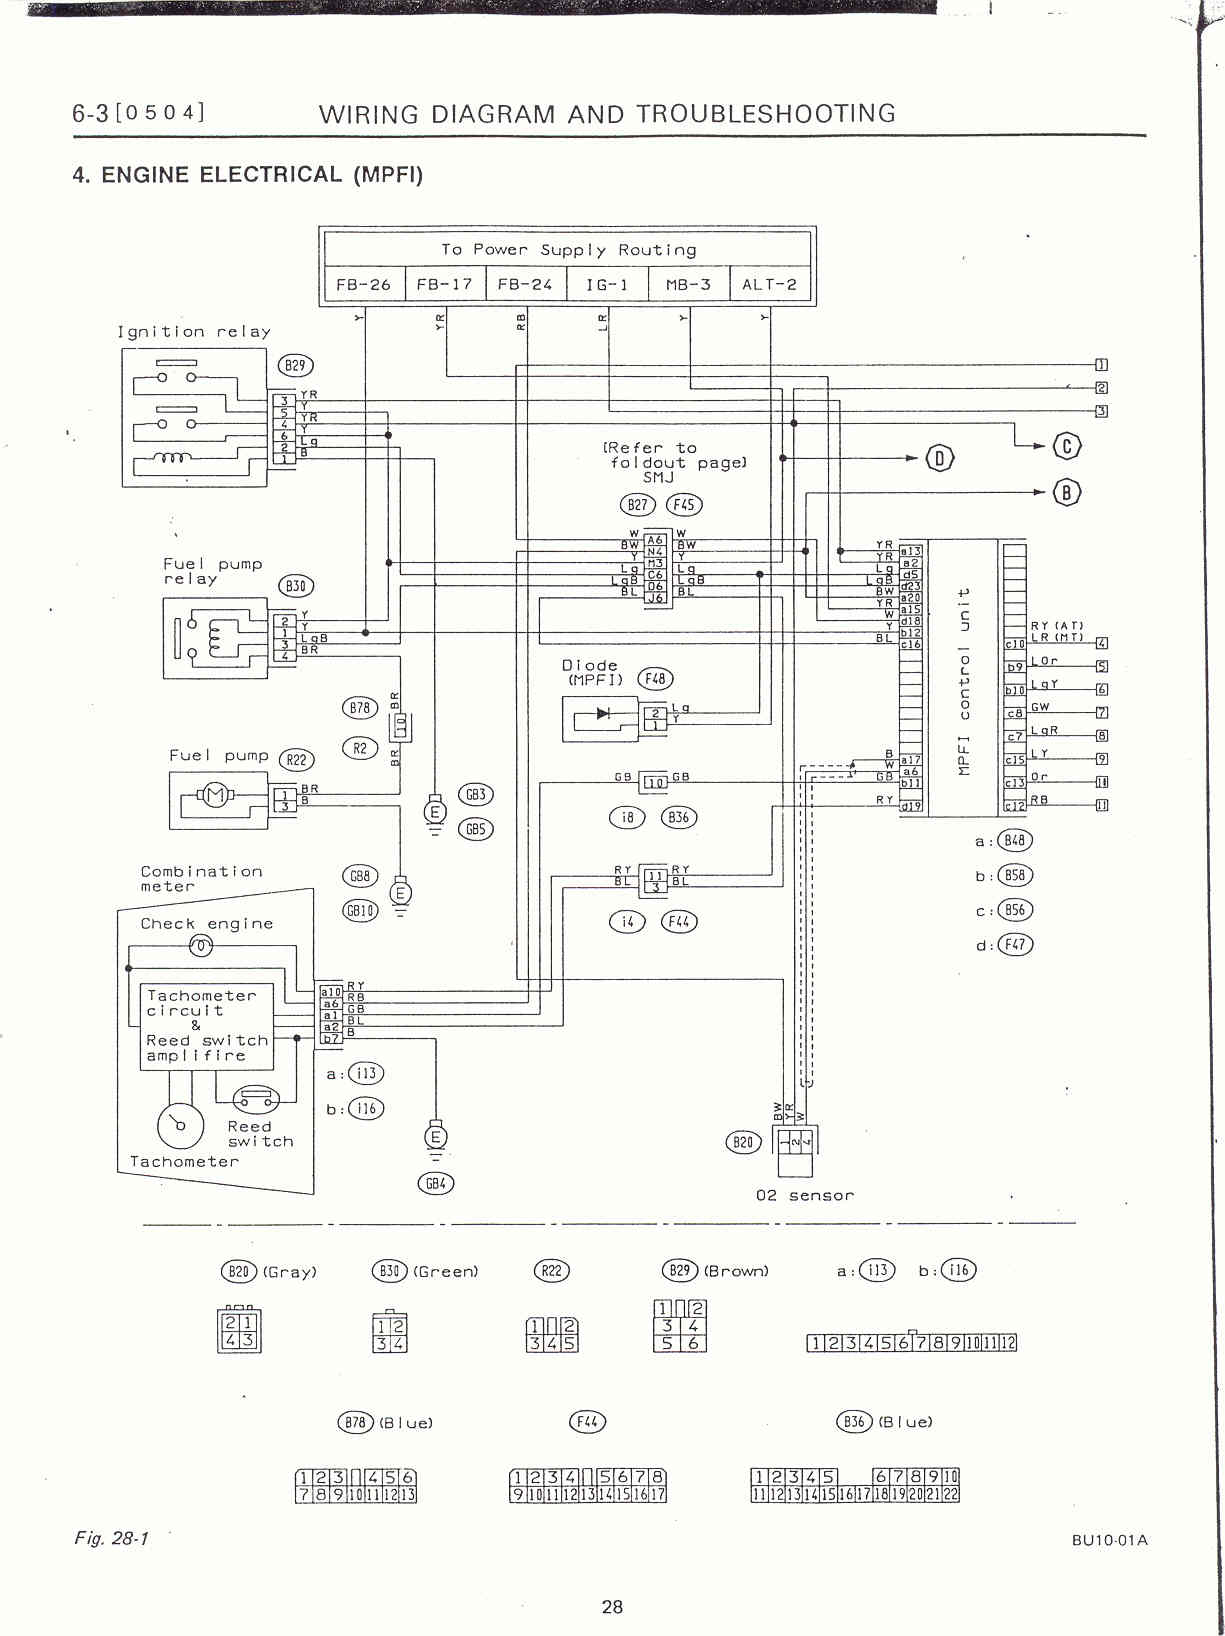 6 3_engine_electrical1 at mt swap nasioc 2001 subaru legacy wiring diagram at panicattacktreatment.co